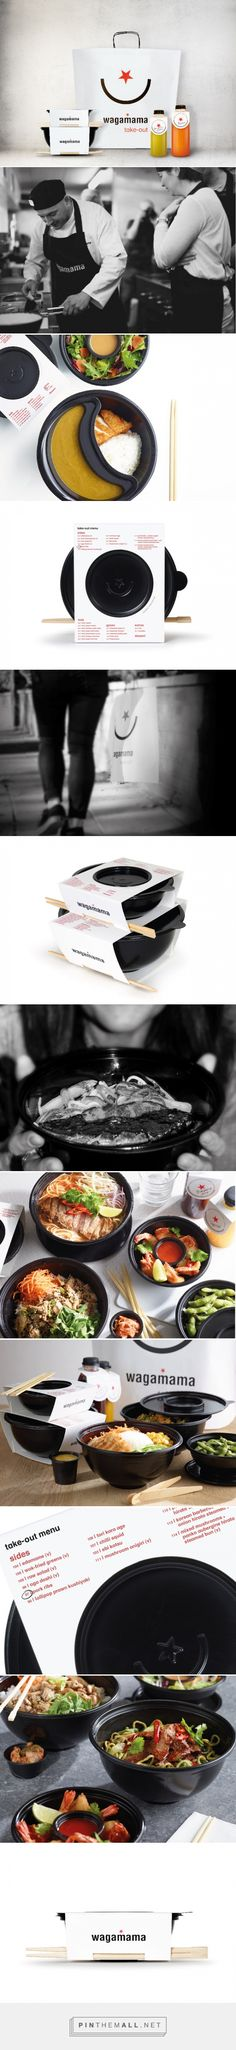 Wagamama Takeaway Packaging designed by Pearlfisher.​ PD